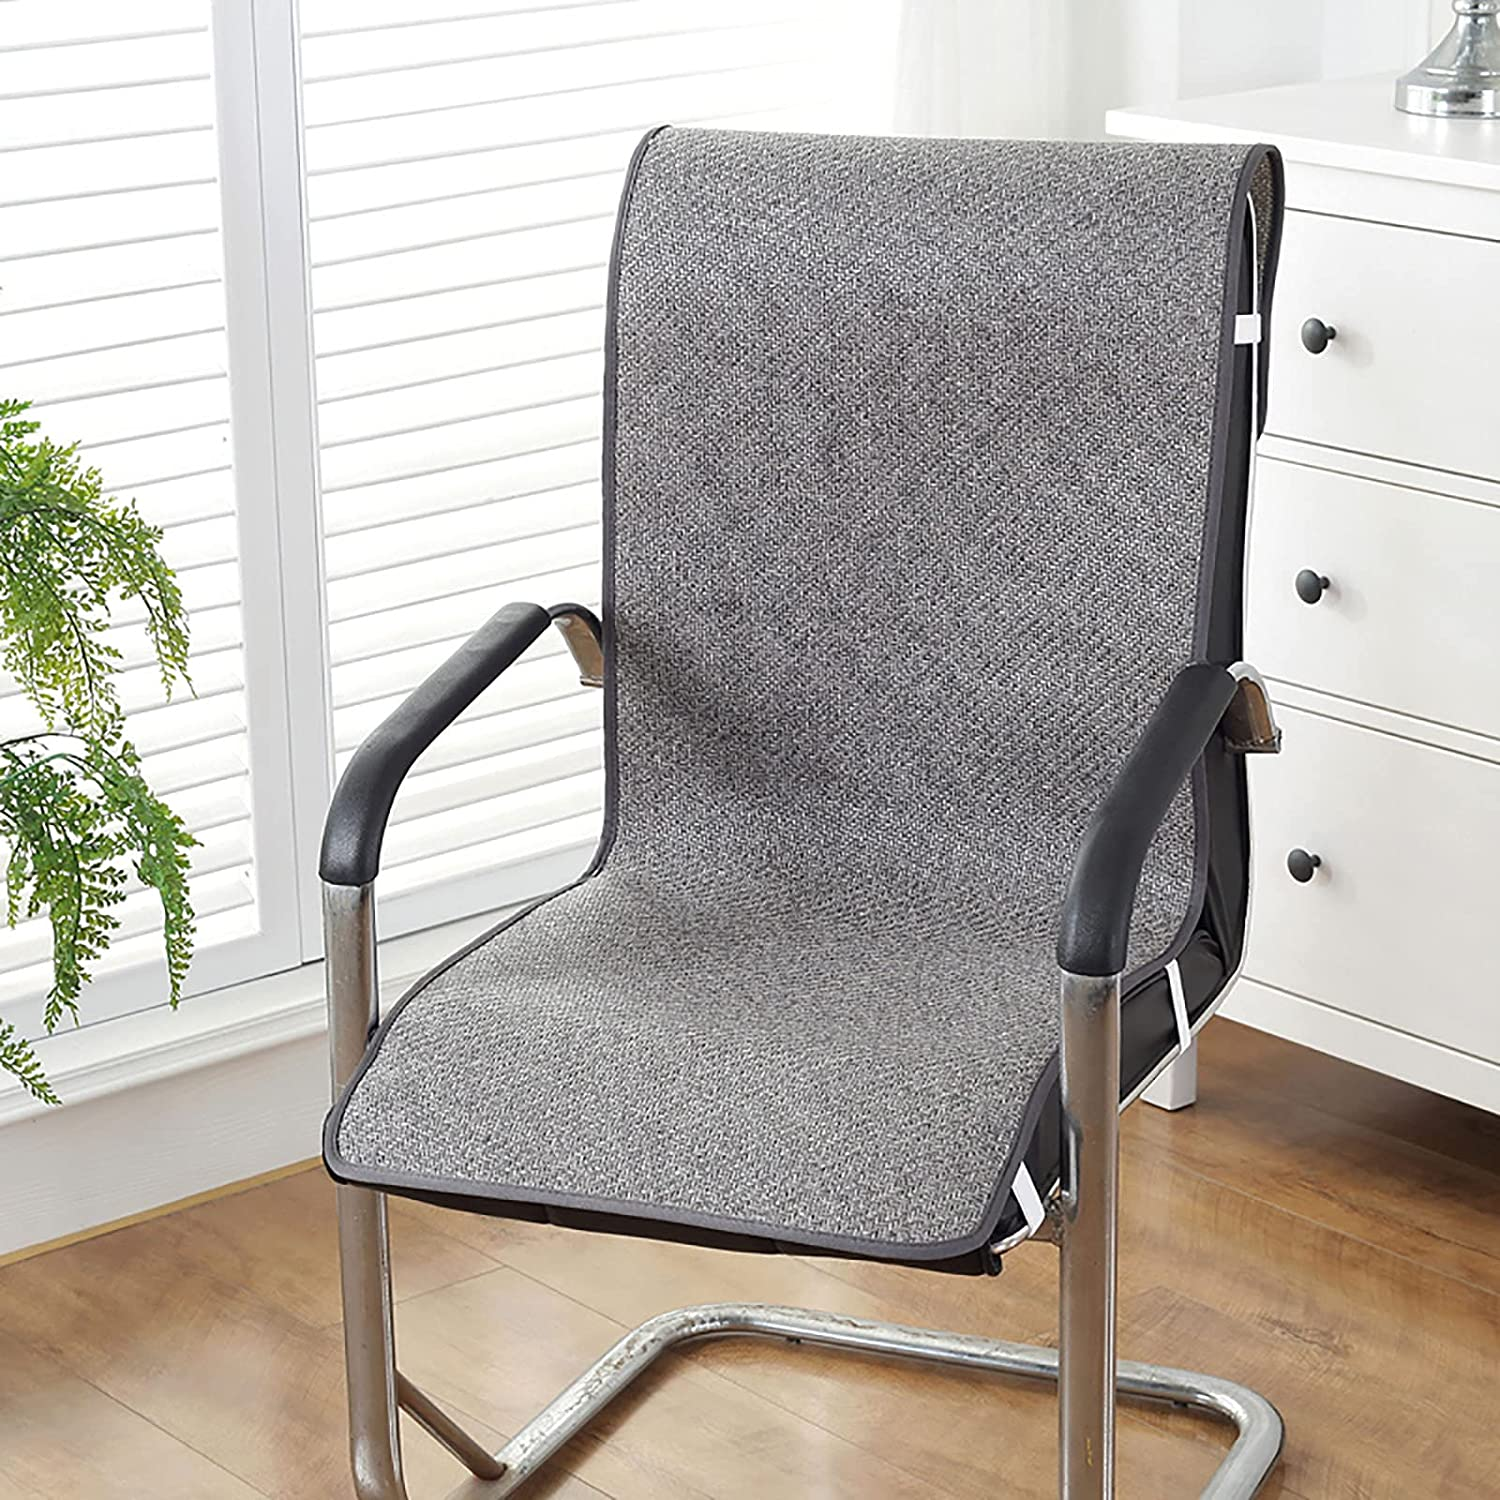 HUALEMEI Summer One-Piece Non Slip Max 52% OFF free shipping Premium Office Cha Pads Chair